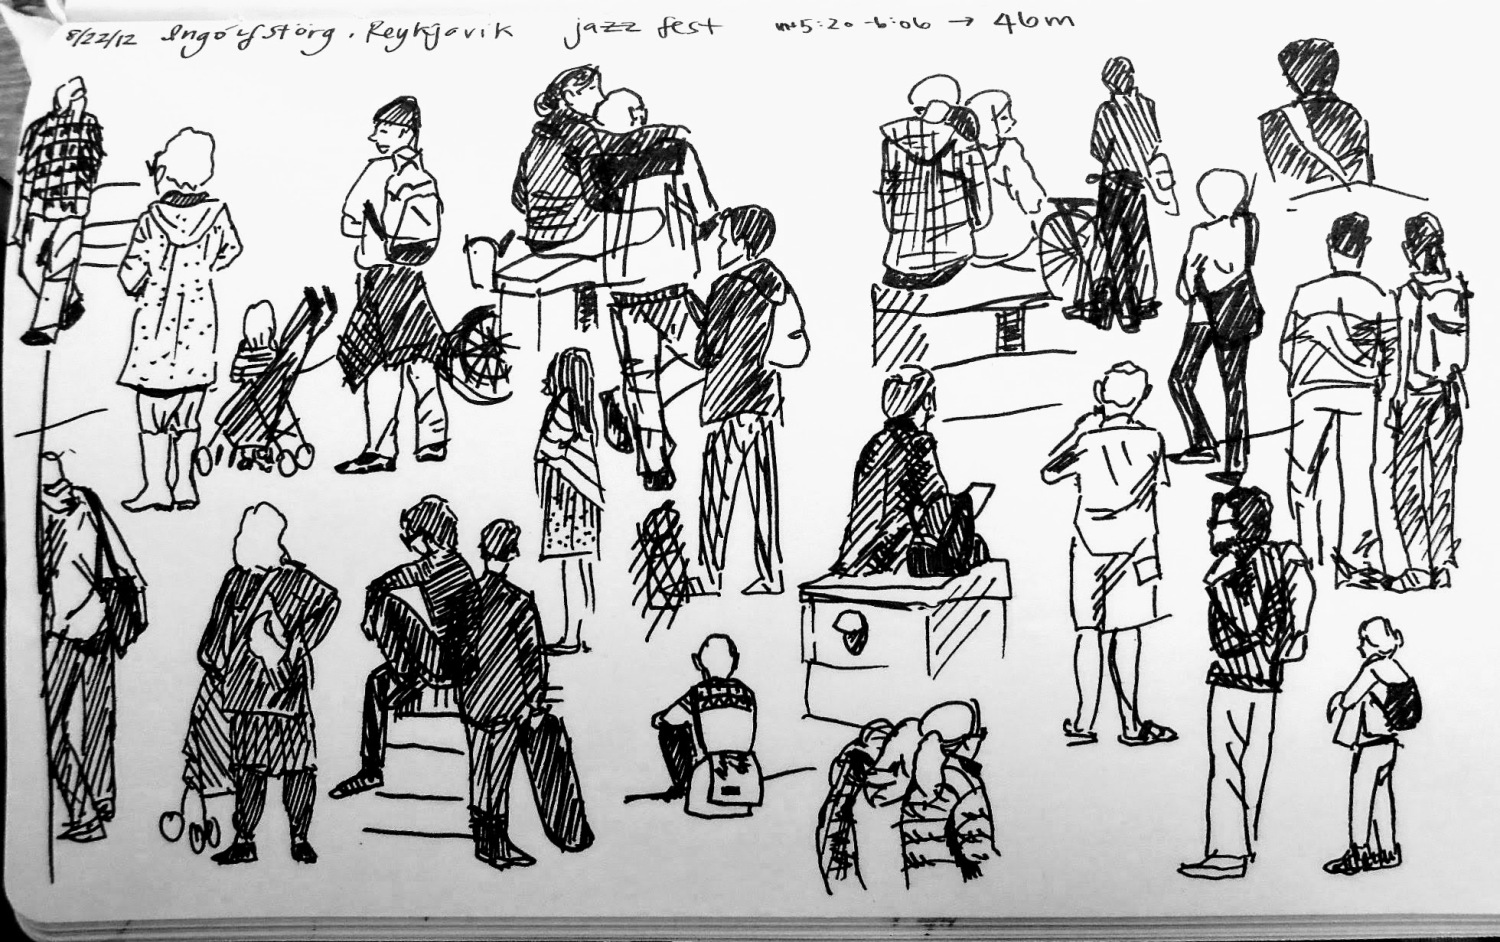 Black ink sketches of people in a Reykjavík square